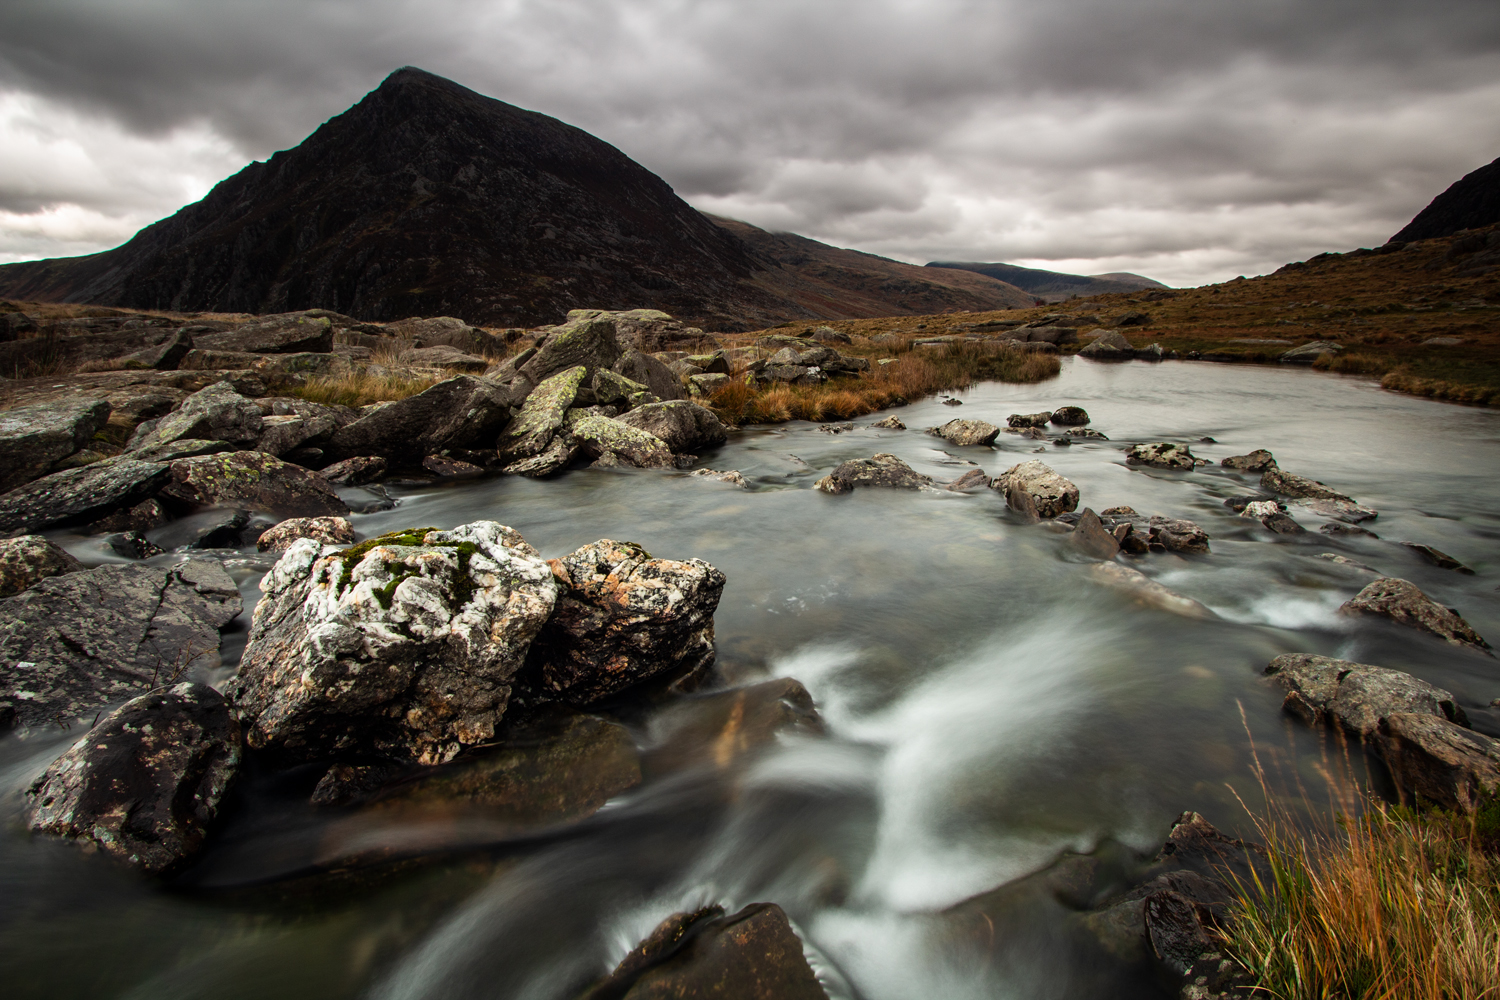 Image by Paul Makin. Snowdonia Photography Workshop with Nigel Forster